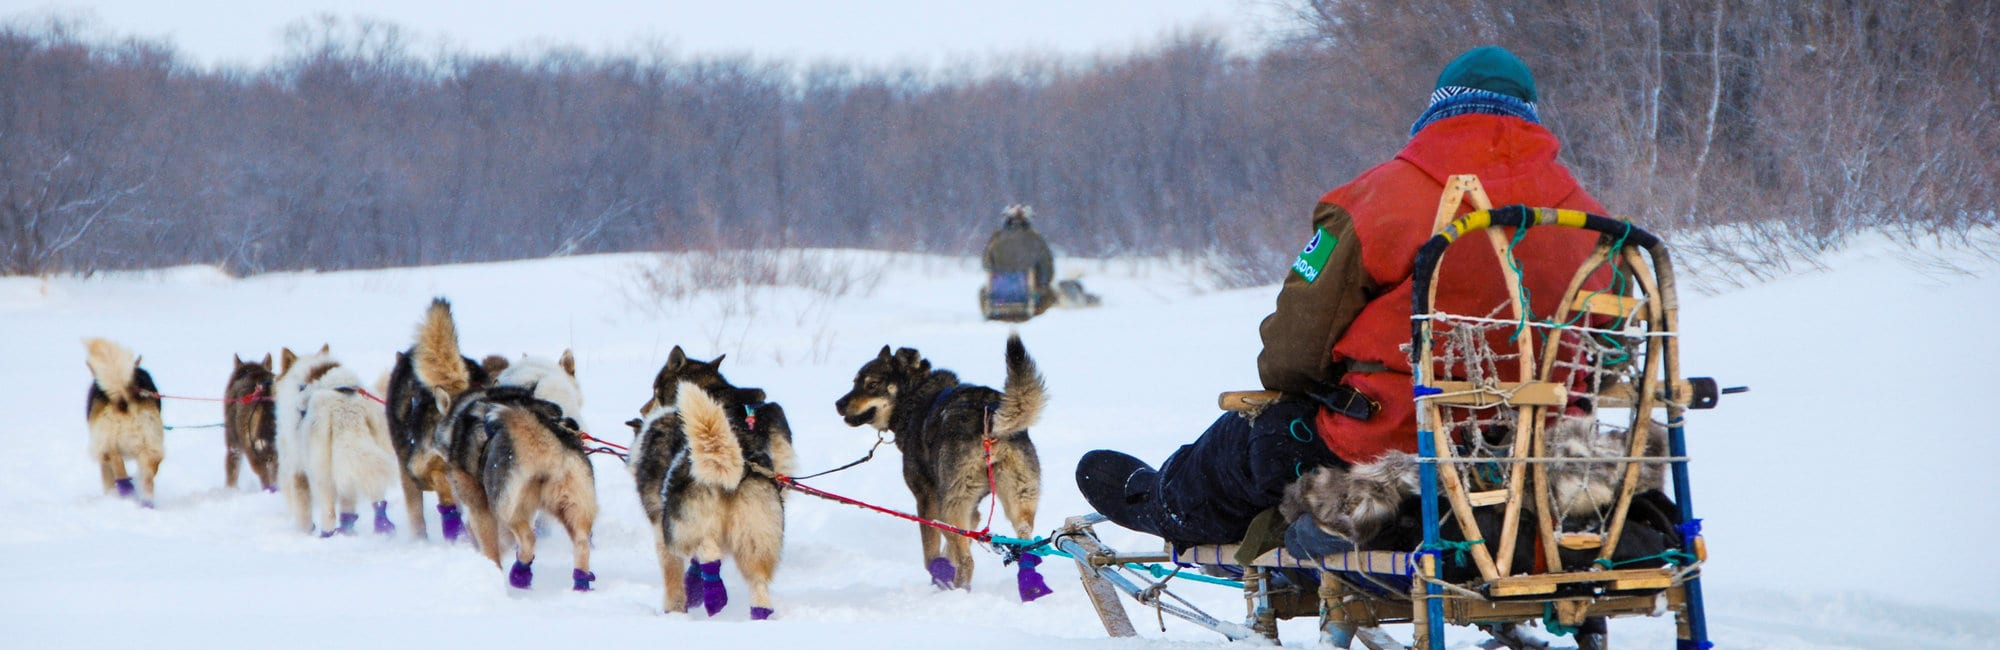 slide-winter-dog-sledding